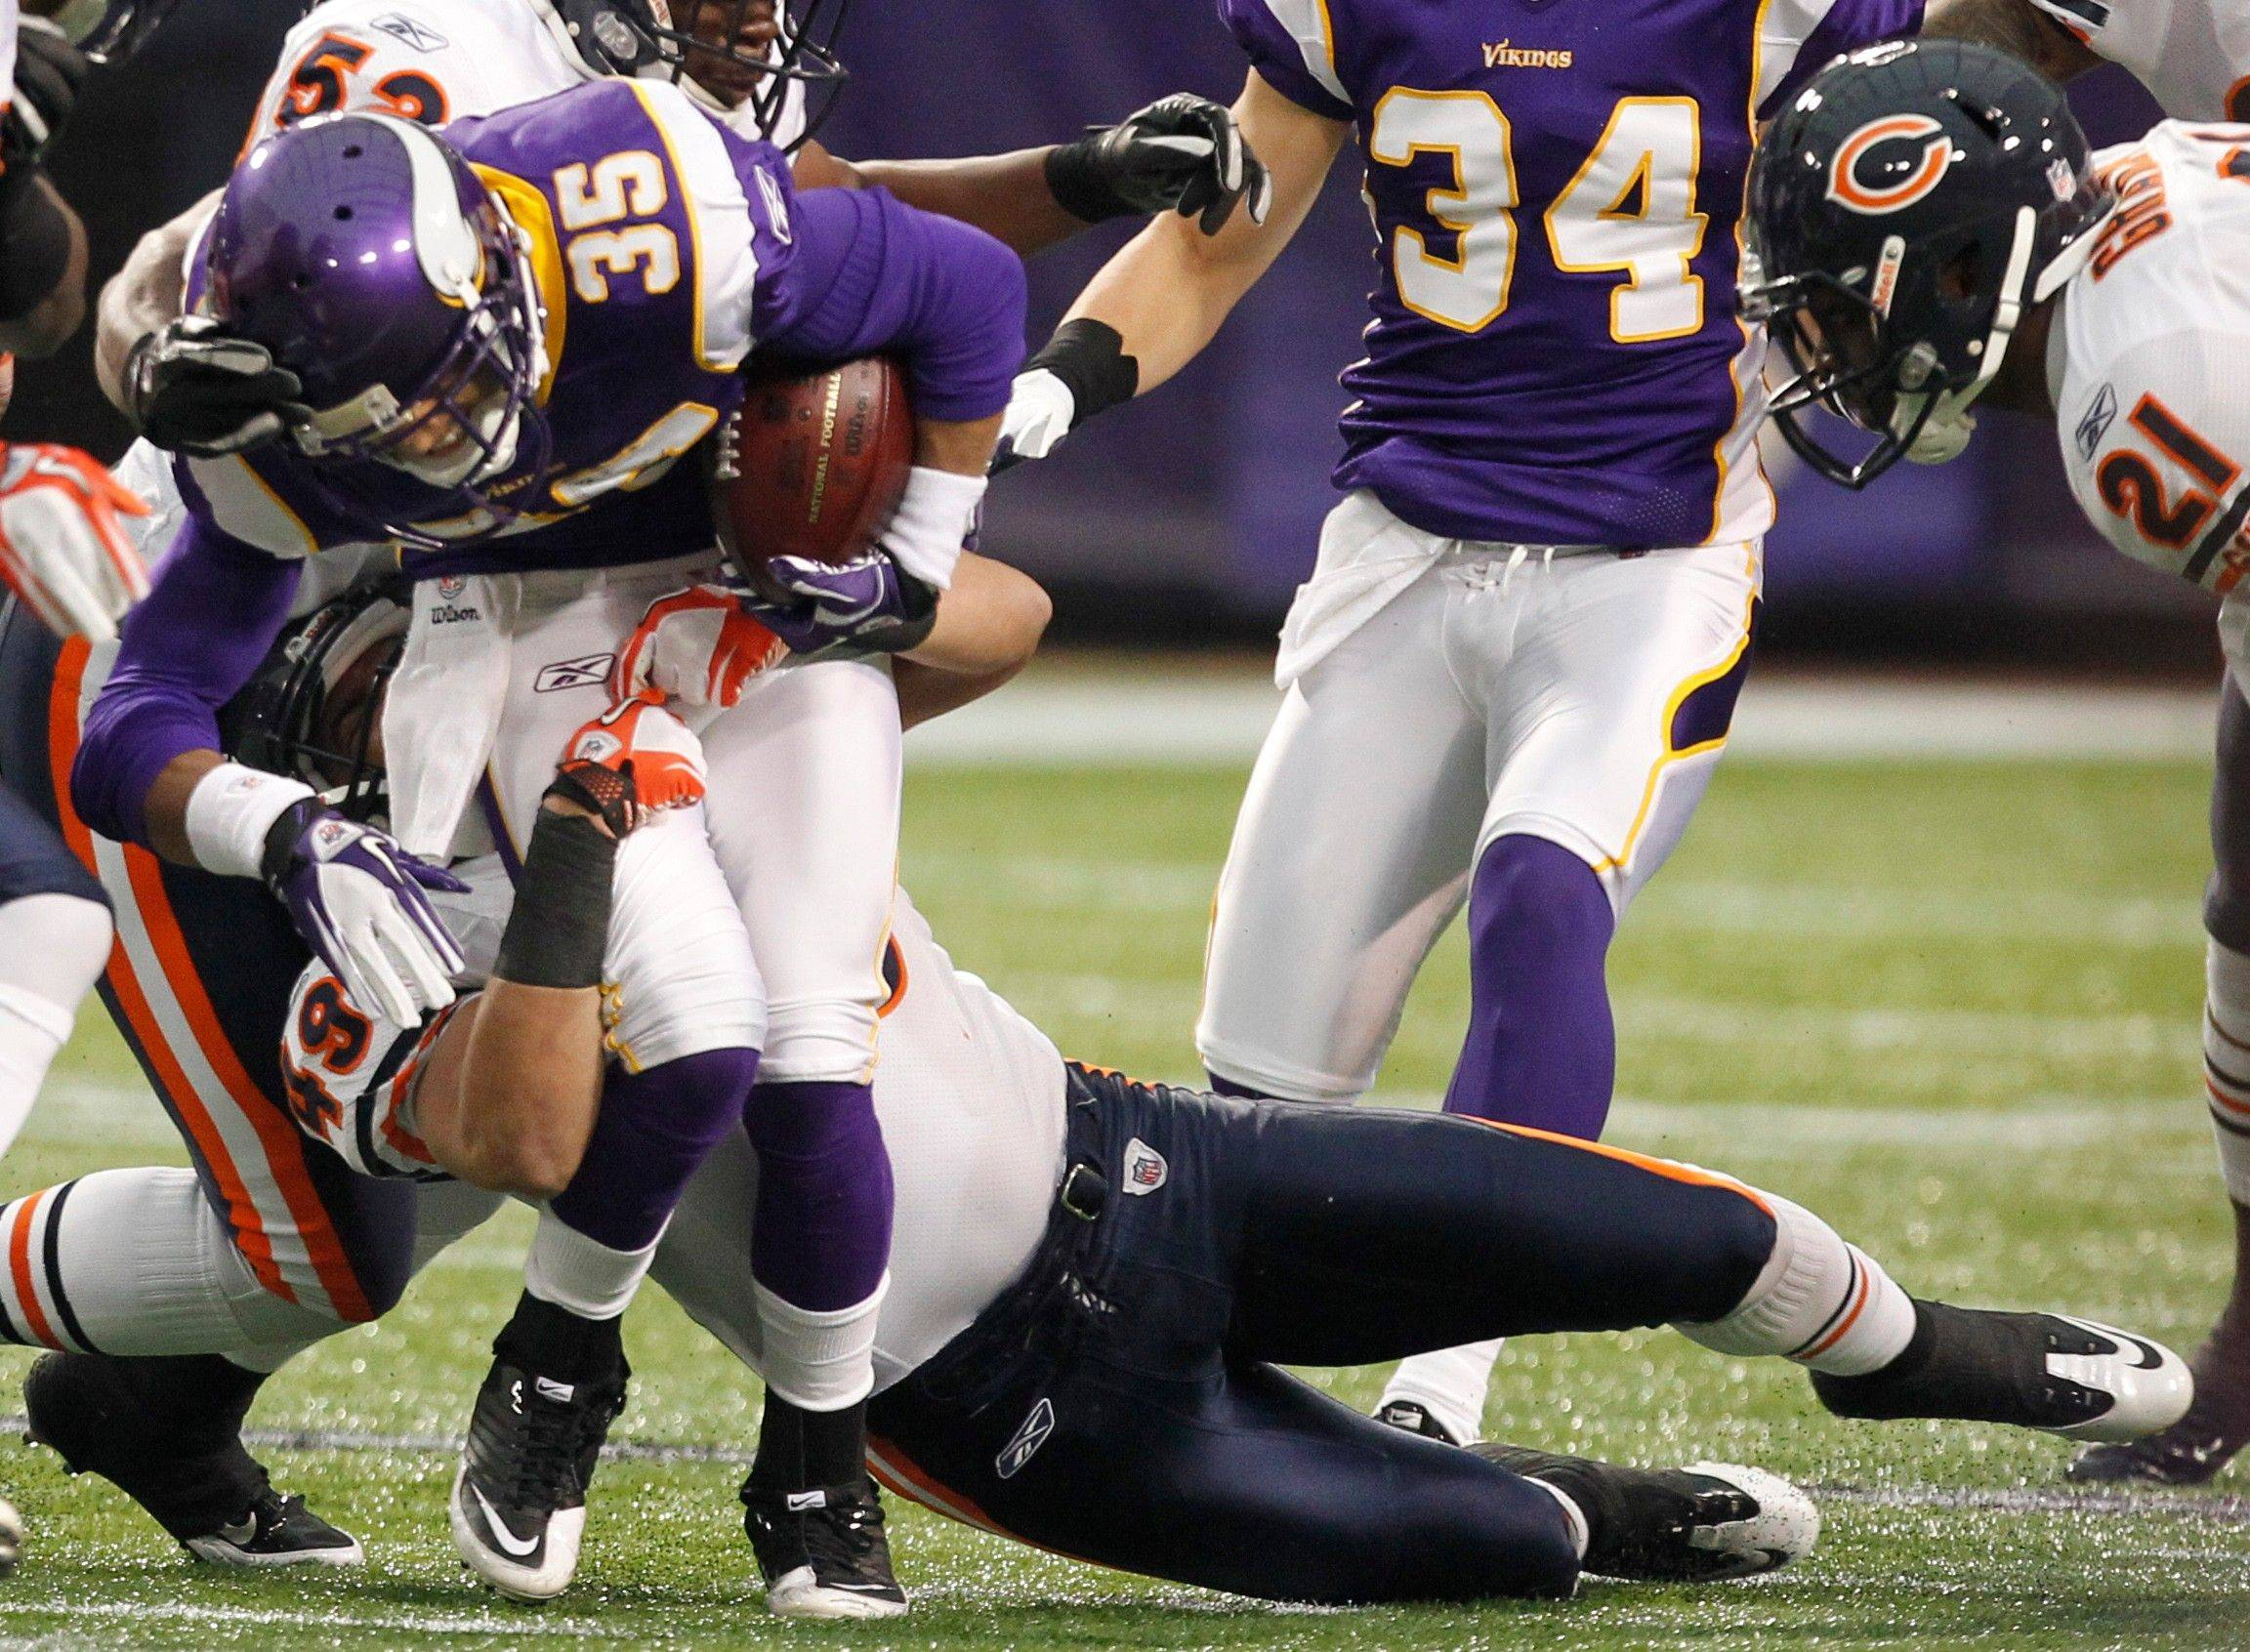 Minnesota Vikings cornerback Marcus Sherels gets tackled by Chicago Bears strong safety Winston Venable on a kickoff return in the first half.